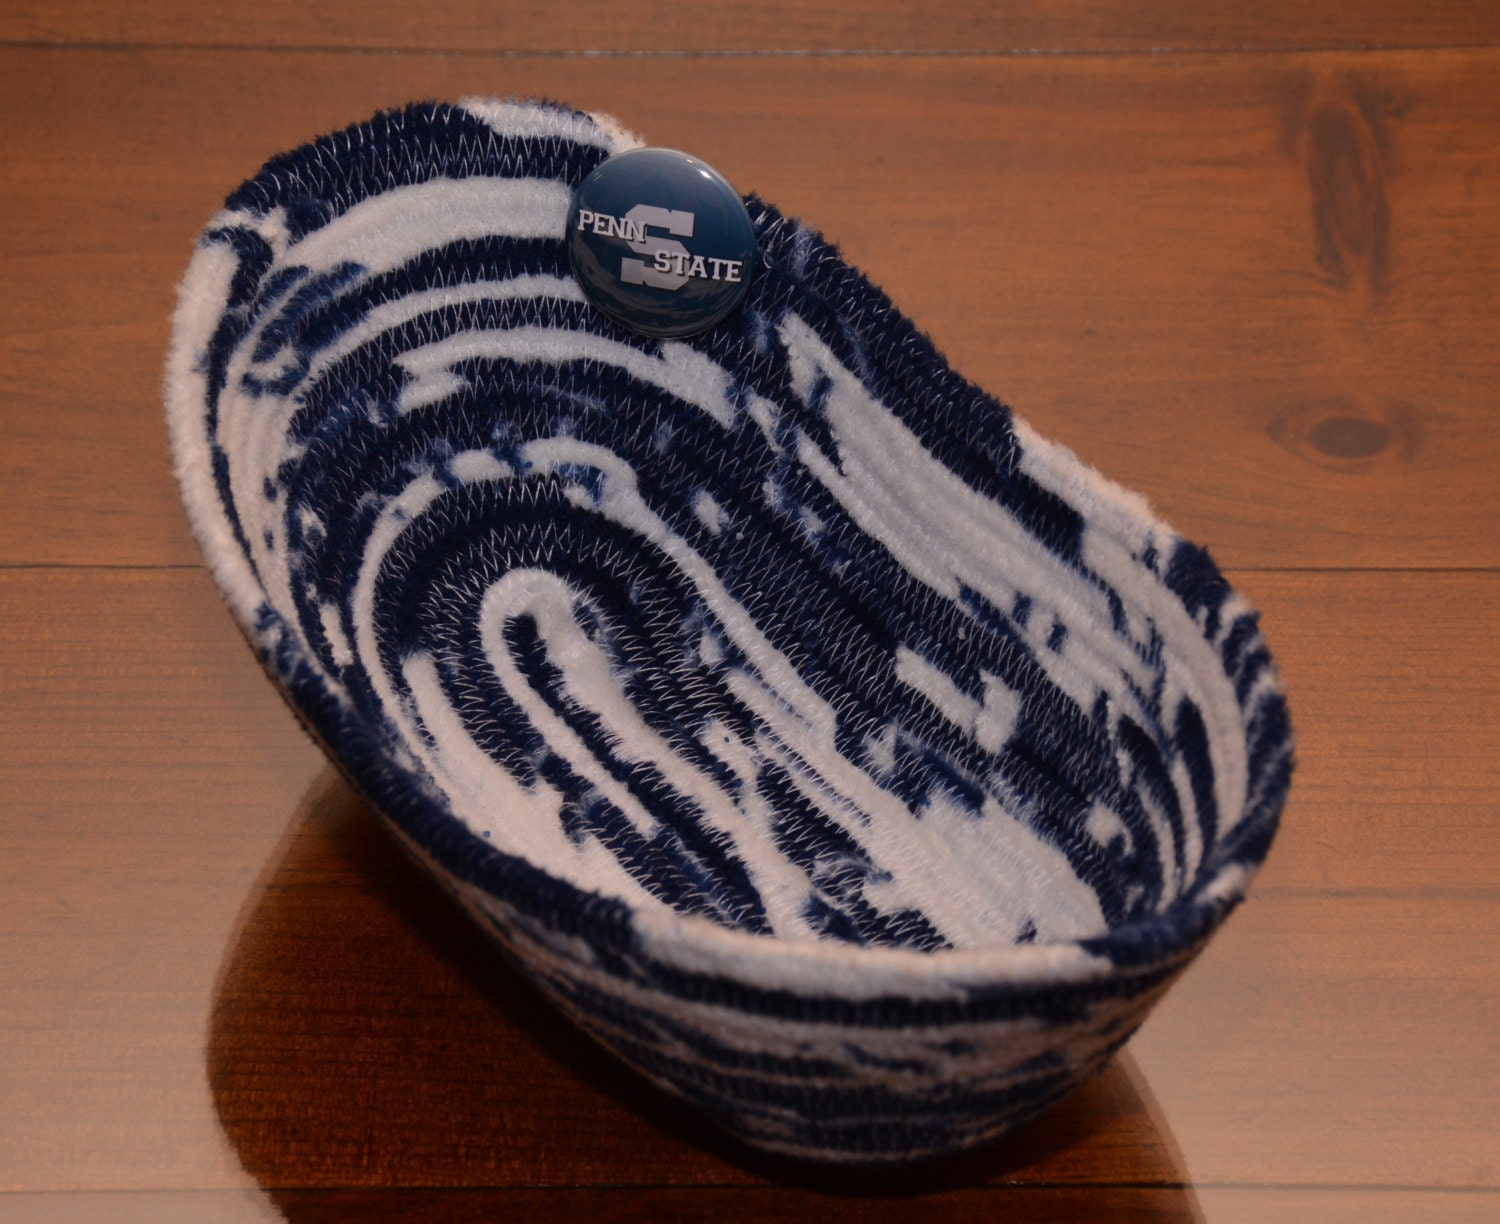 Handmade Rope Basket : Fabric rope coiled basket handmade blue white we are penn